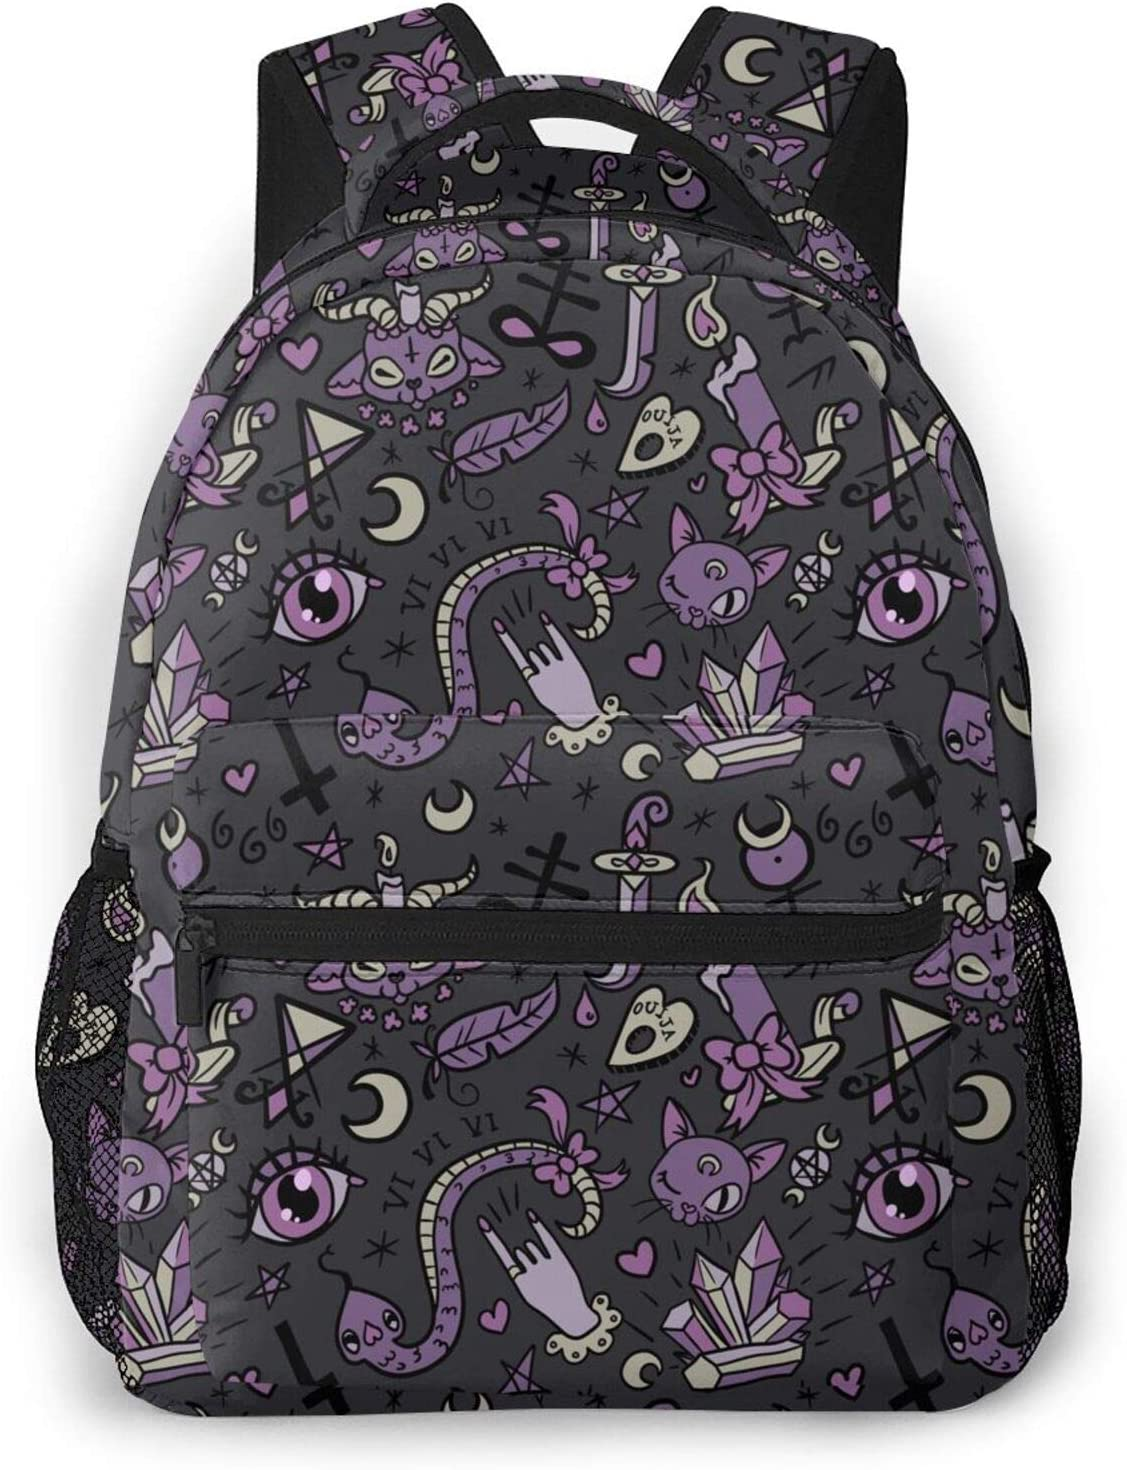 Cute Gray Purple Black Magic Outlet SALE Goth All Over Backpack Spooky Sale SALE% OFF Print